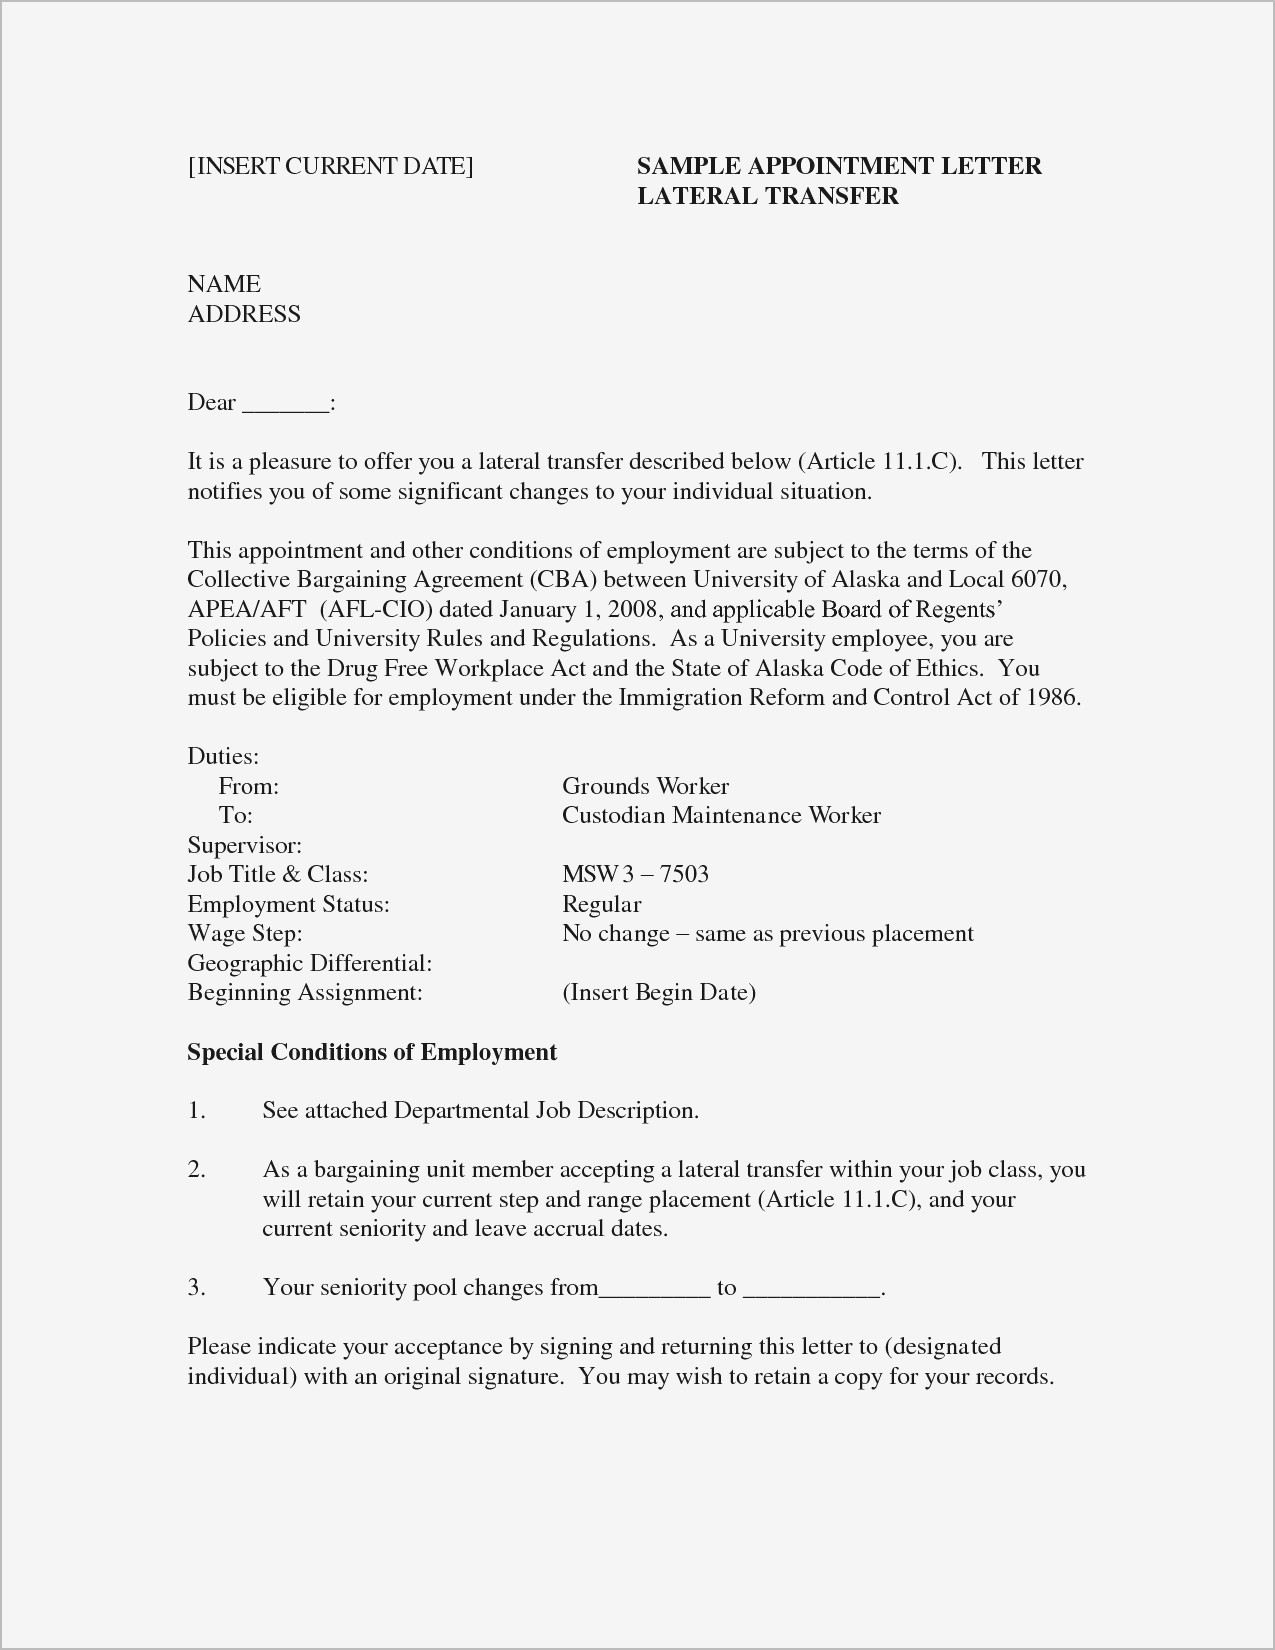 Rent Free Letter Template for Mortgage - Cover Letter Template Free Ideas